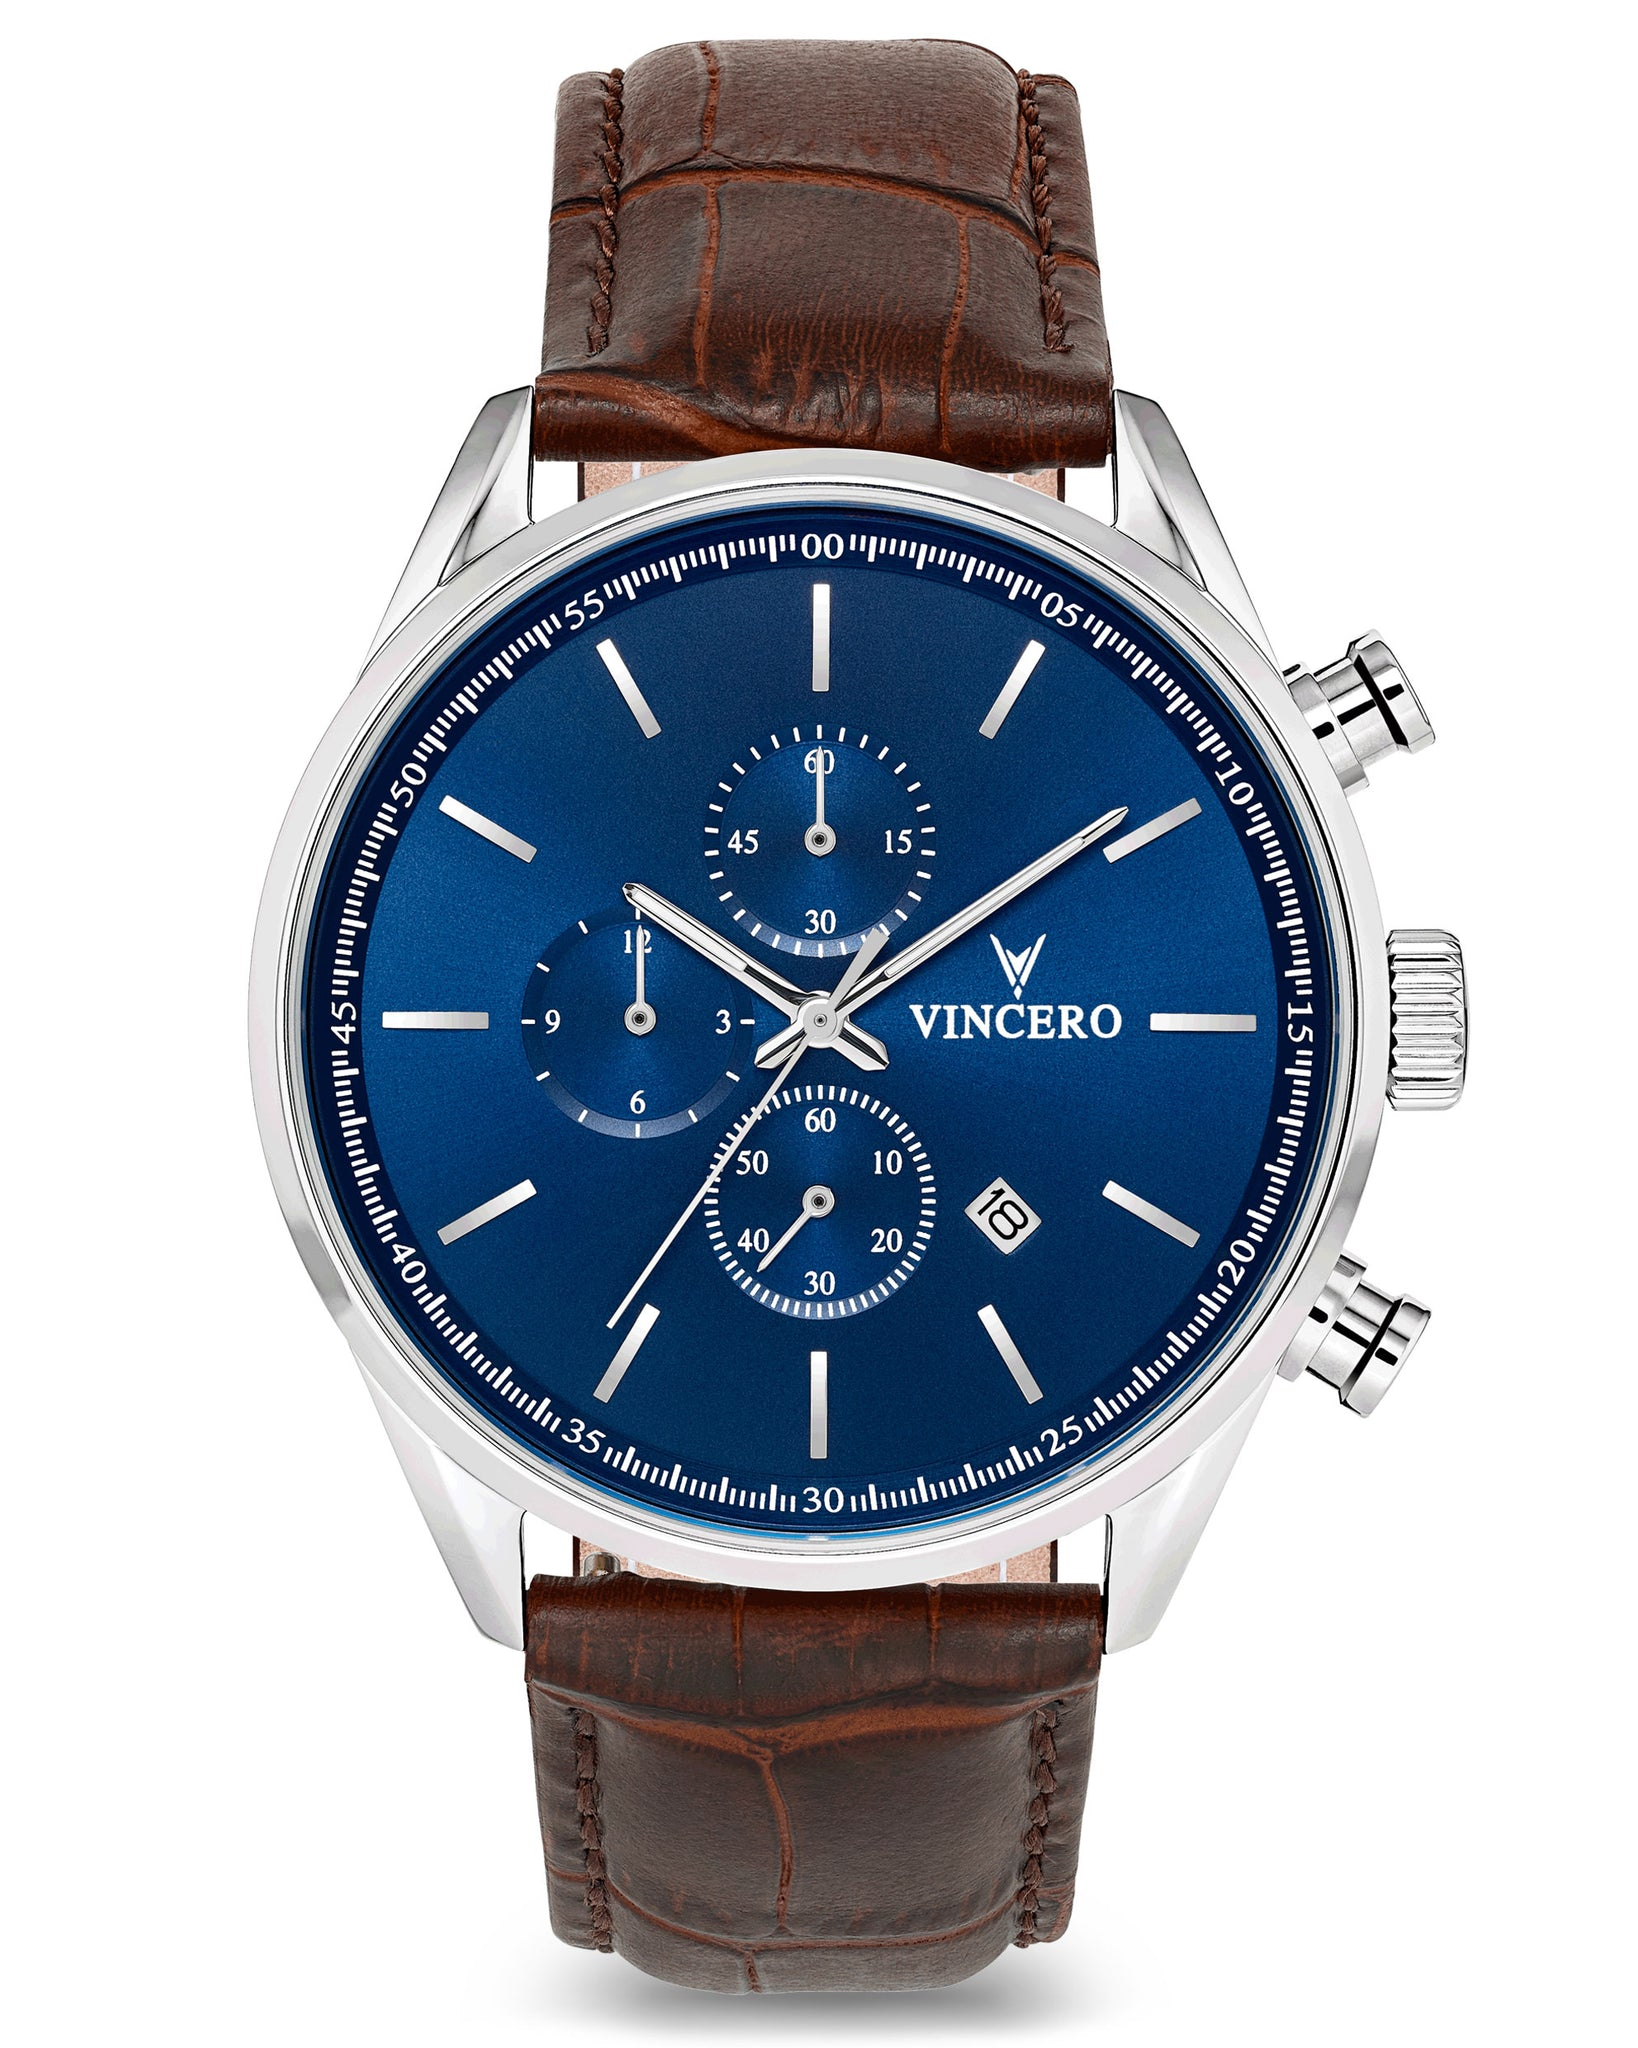 Men's Chronograph - Blue/Brown | Vincero Watches | Vincero Collective